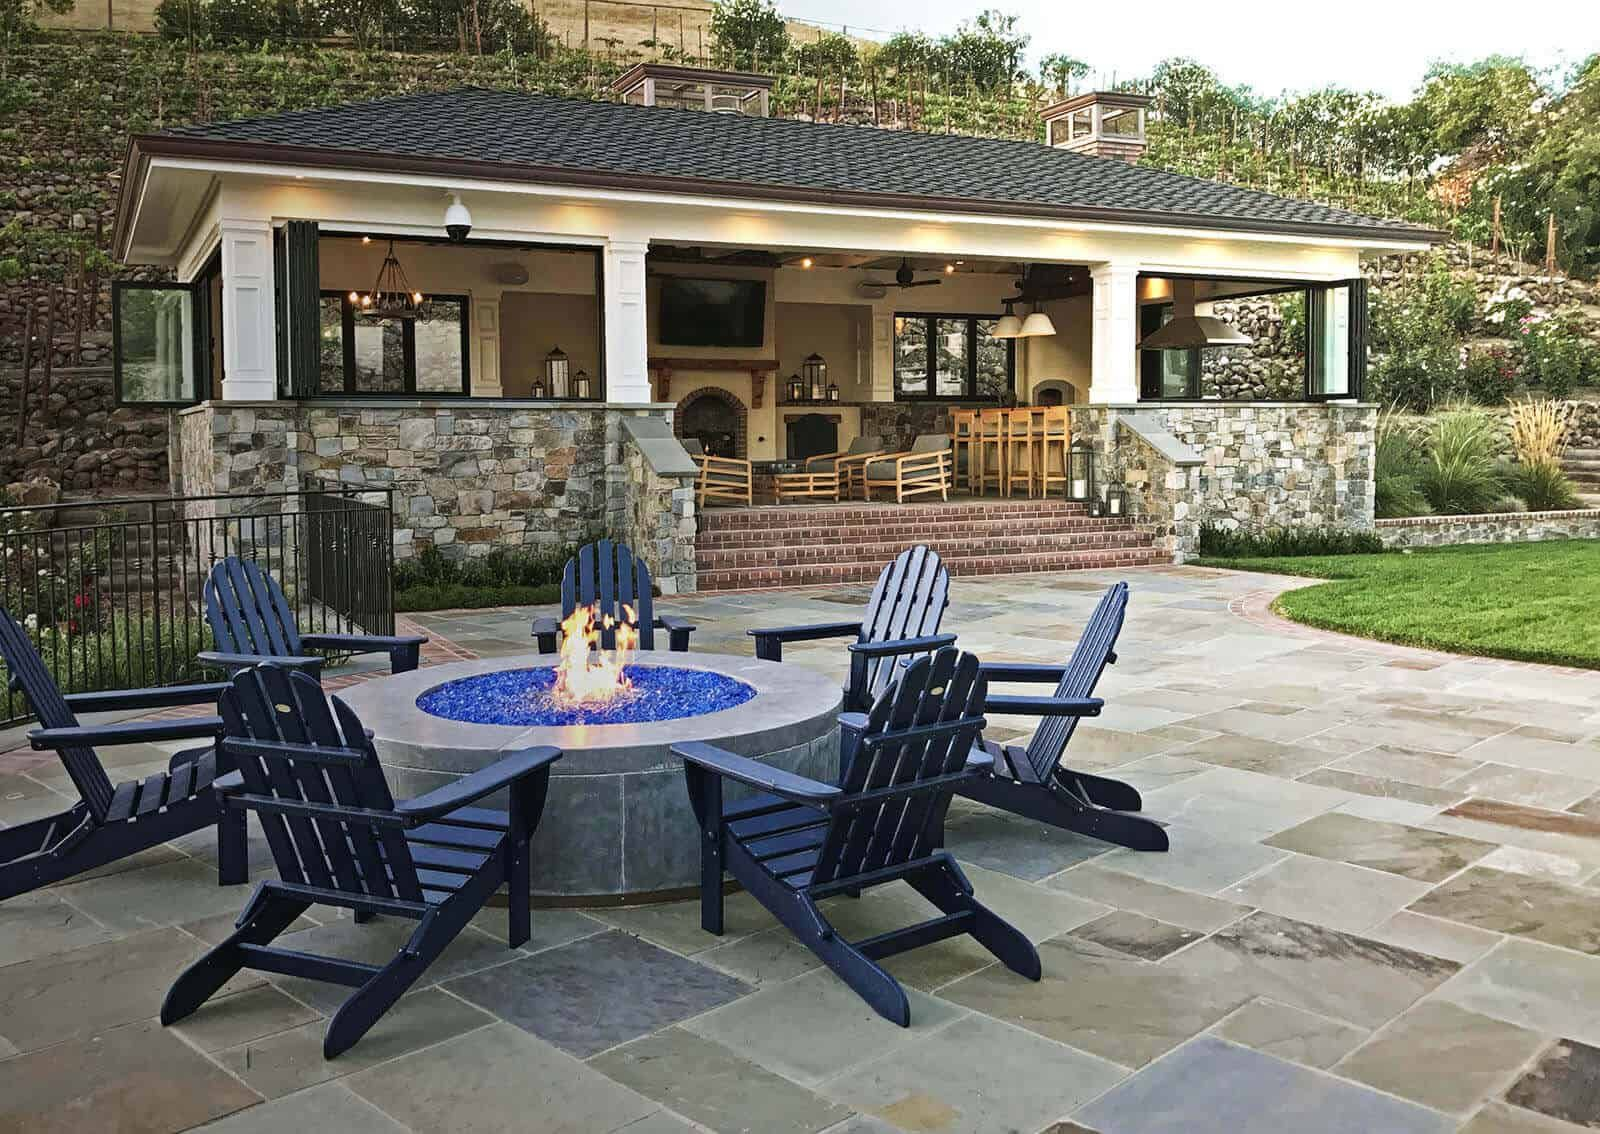 21 Ideas For The Perfect Backyard Patio Cover Outdoor Covered Patio Patio Backyard Patio